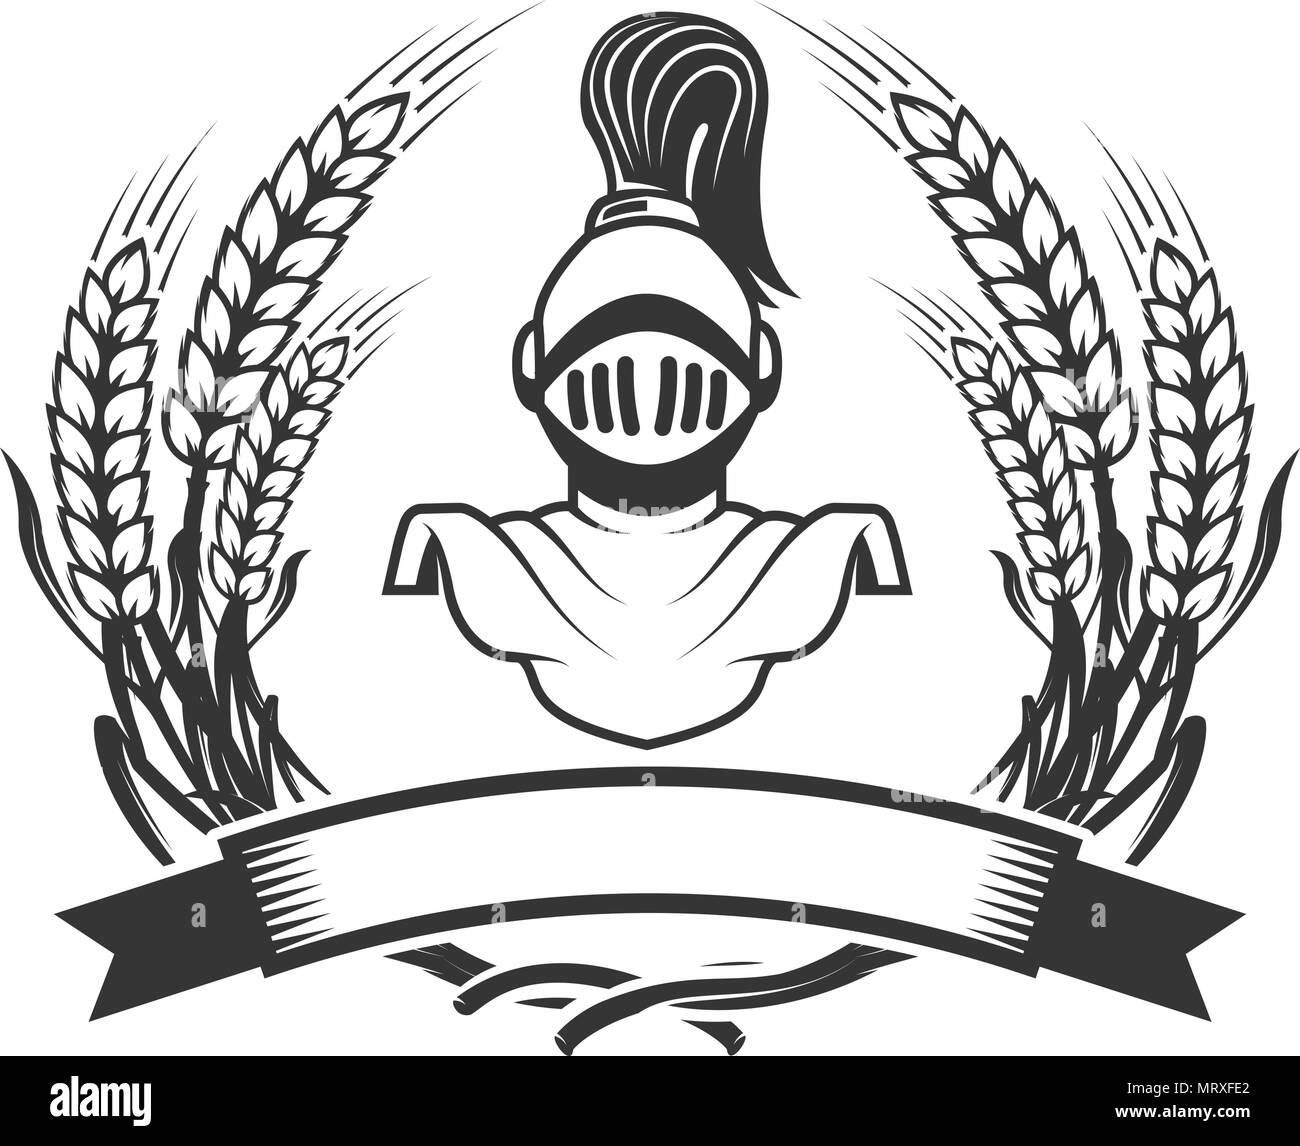 emblem template with medieval knight helmet design element for logo